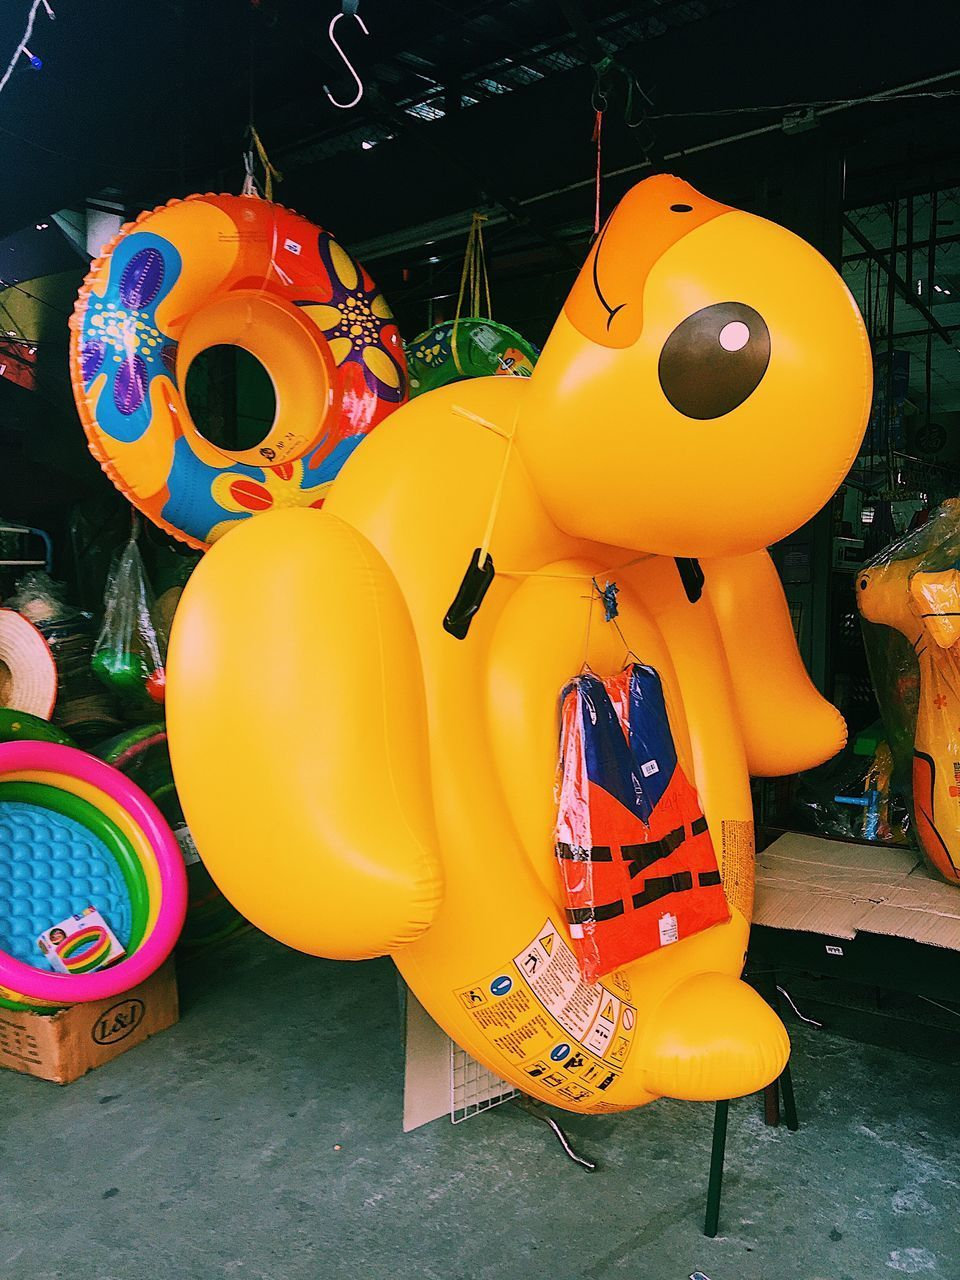 childhood, representation, multi colored, yellow, toy, plastic, large group of objects, day, inflatable, balloon, variation, choice, outdoors, retail, human representation, close-up, container, for sale, retail display